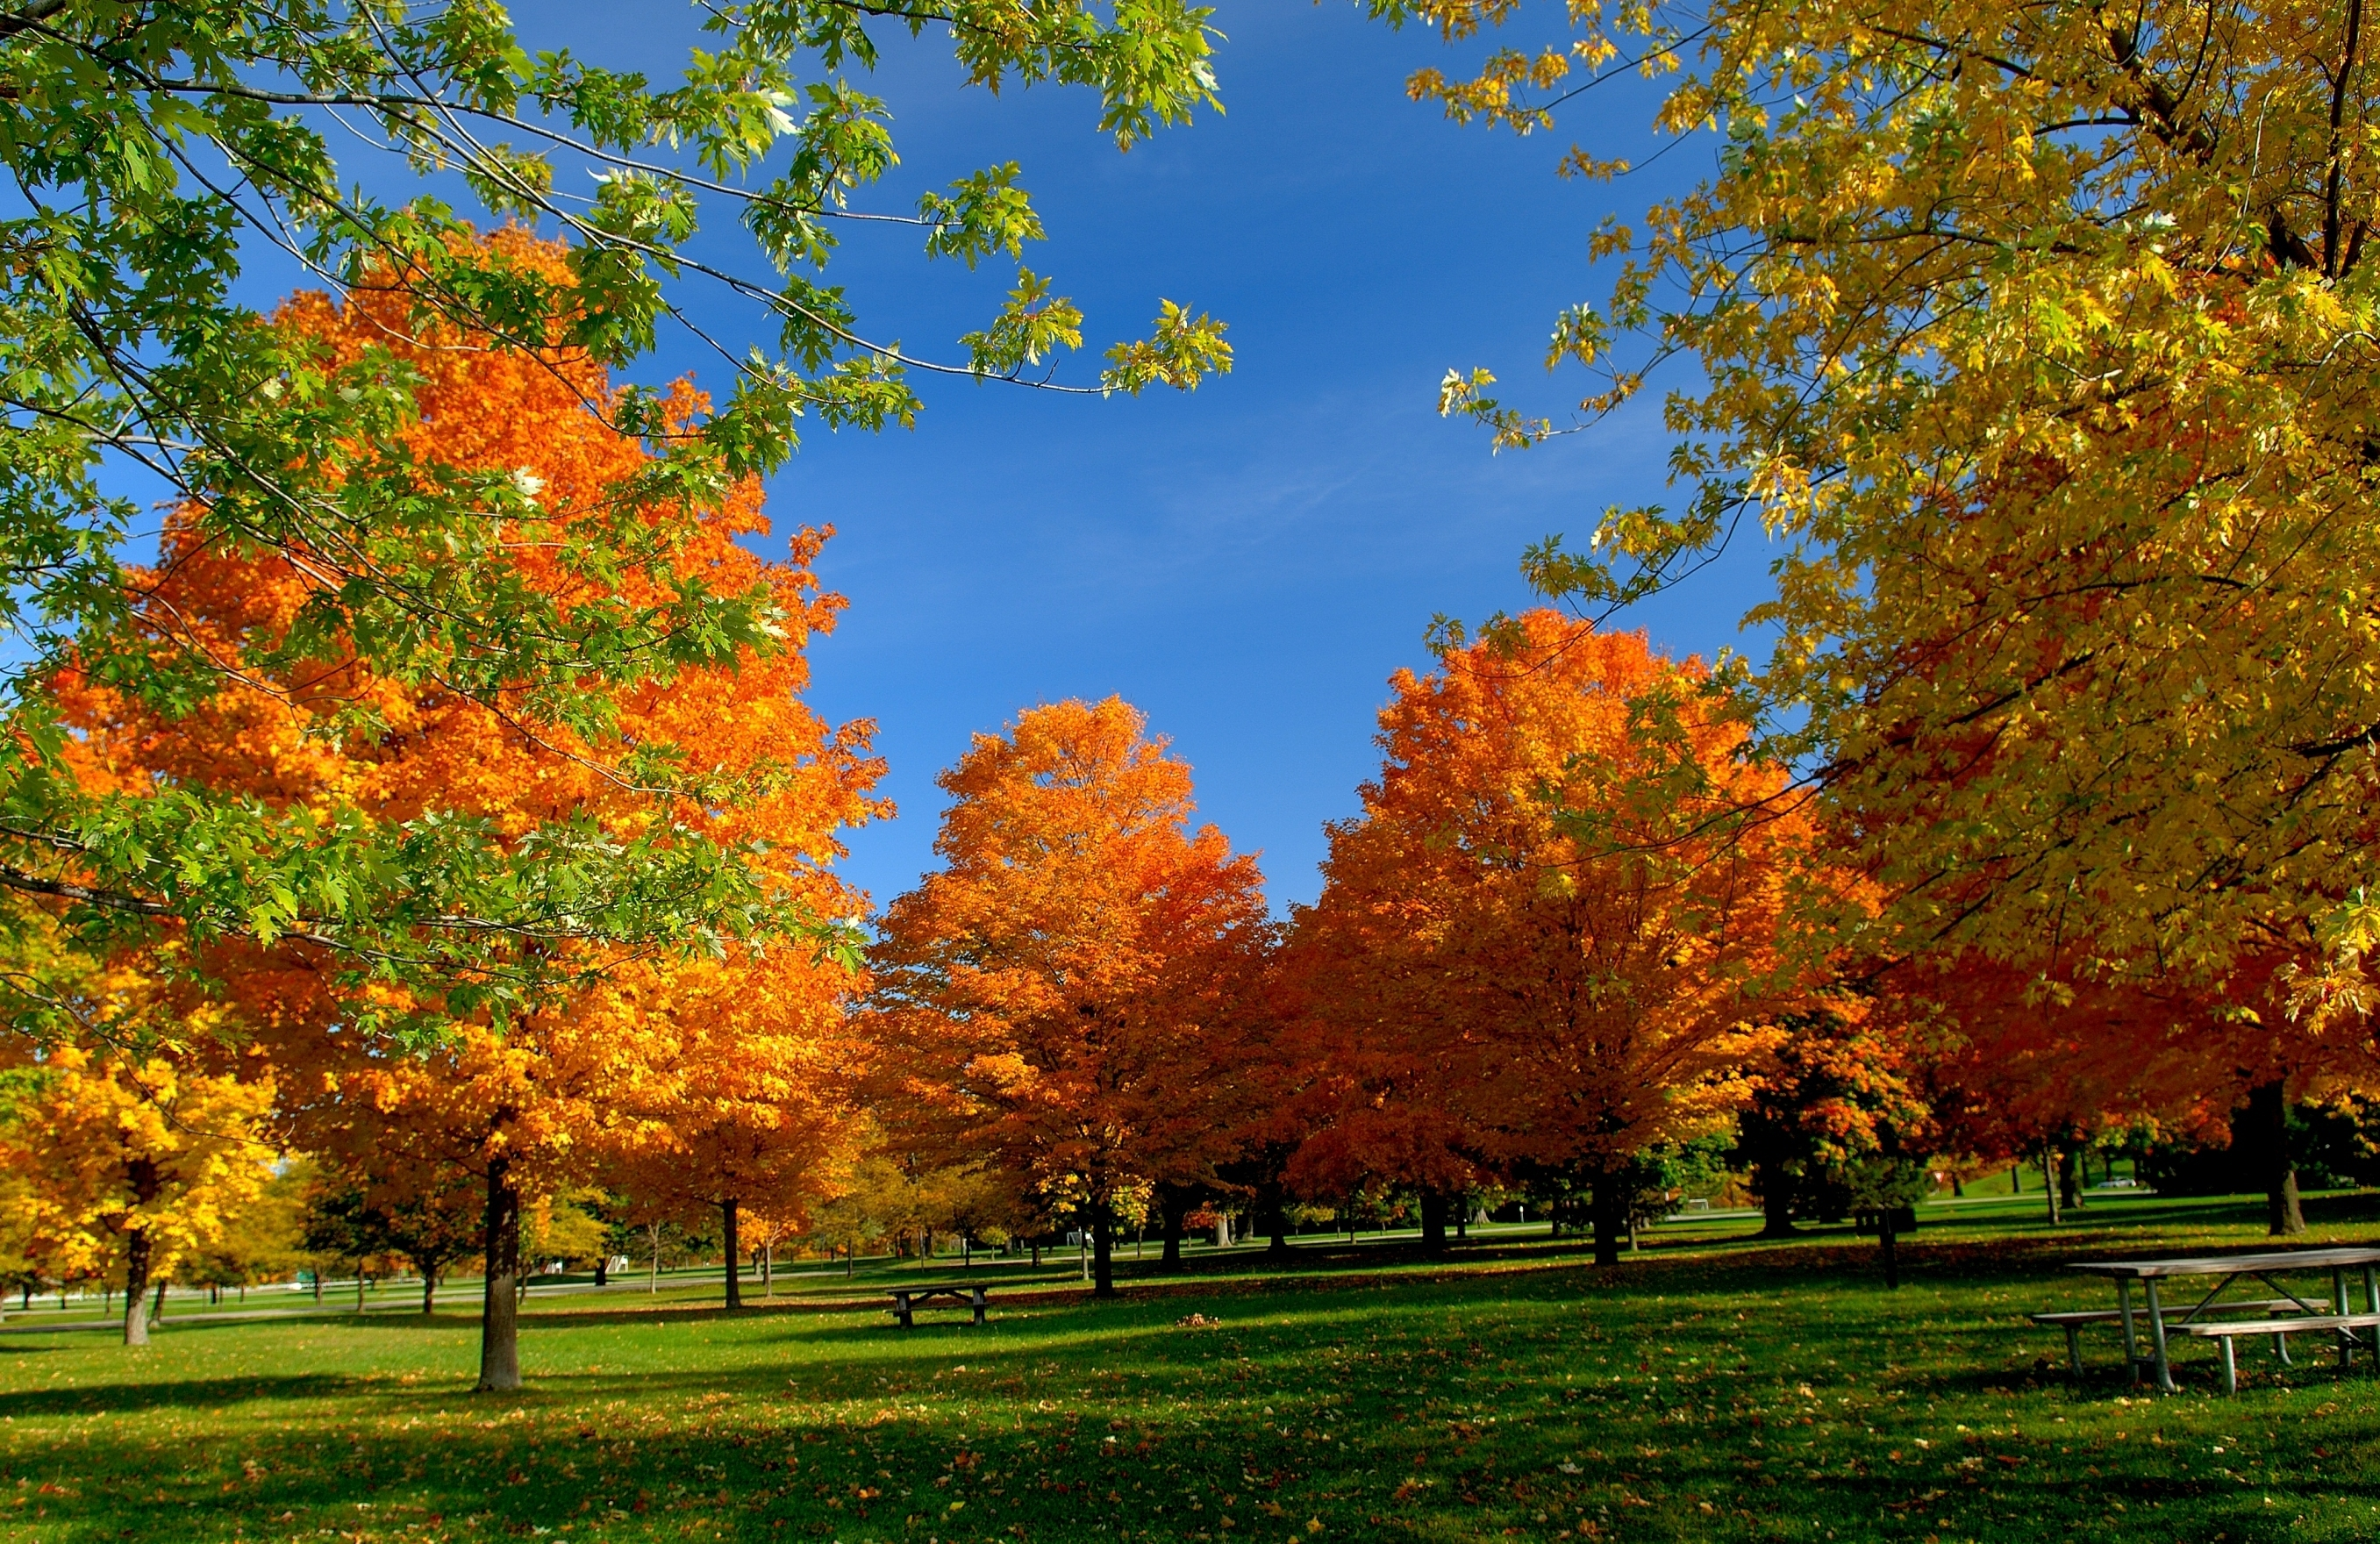 70277 Screensavers and Wallpapers Bench for phone. Download Nature, Trees, Autumn, Leaves, Park, Bench, Picnic pictures for free